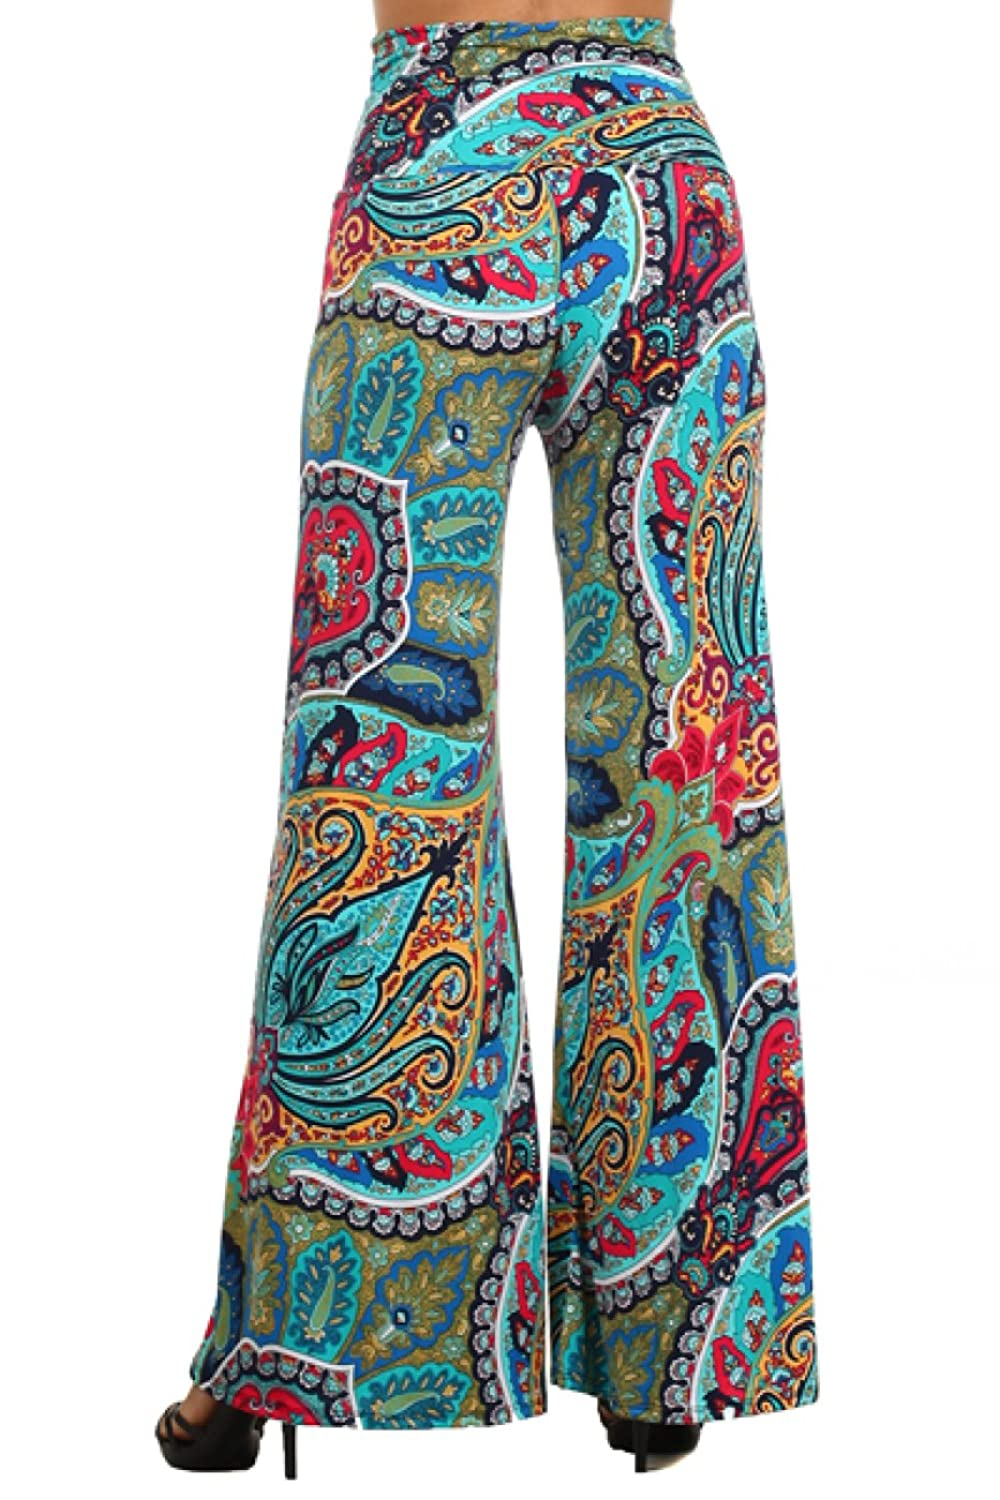 2LUV Plus Women's High Waisted Plus Palazzo Pants